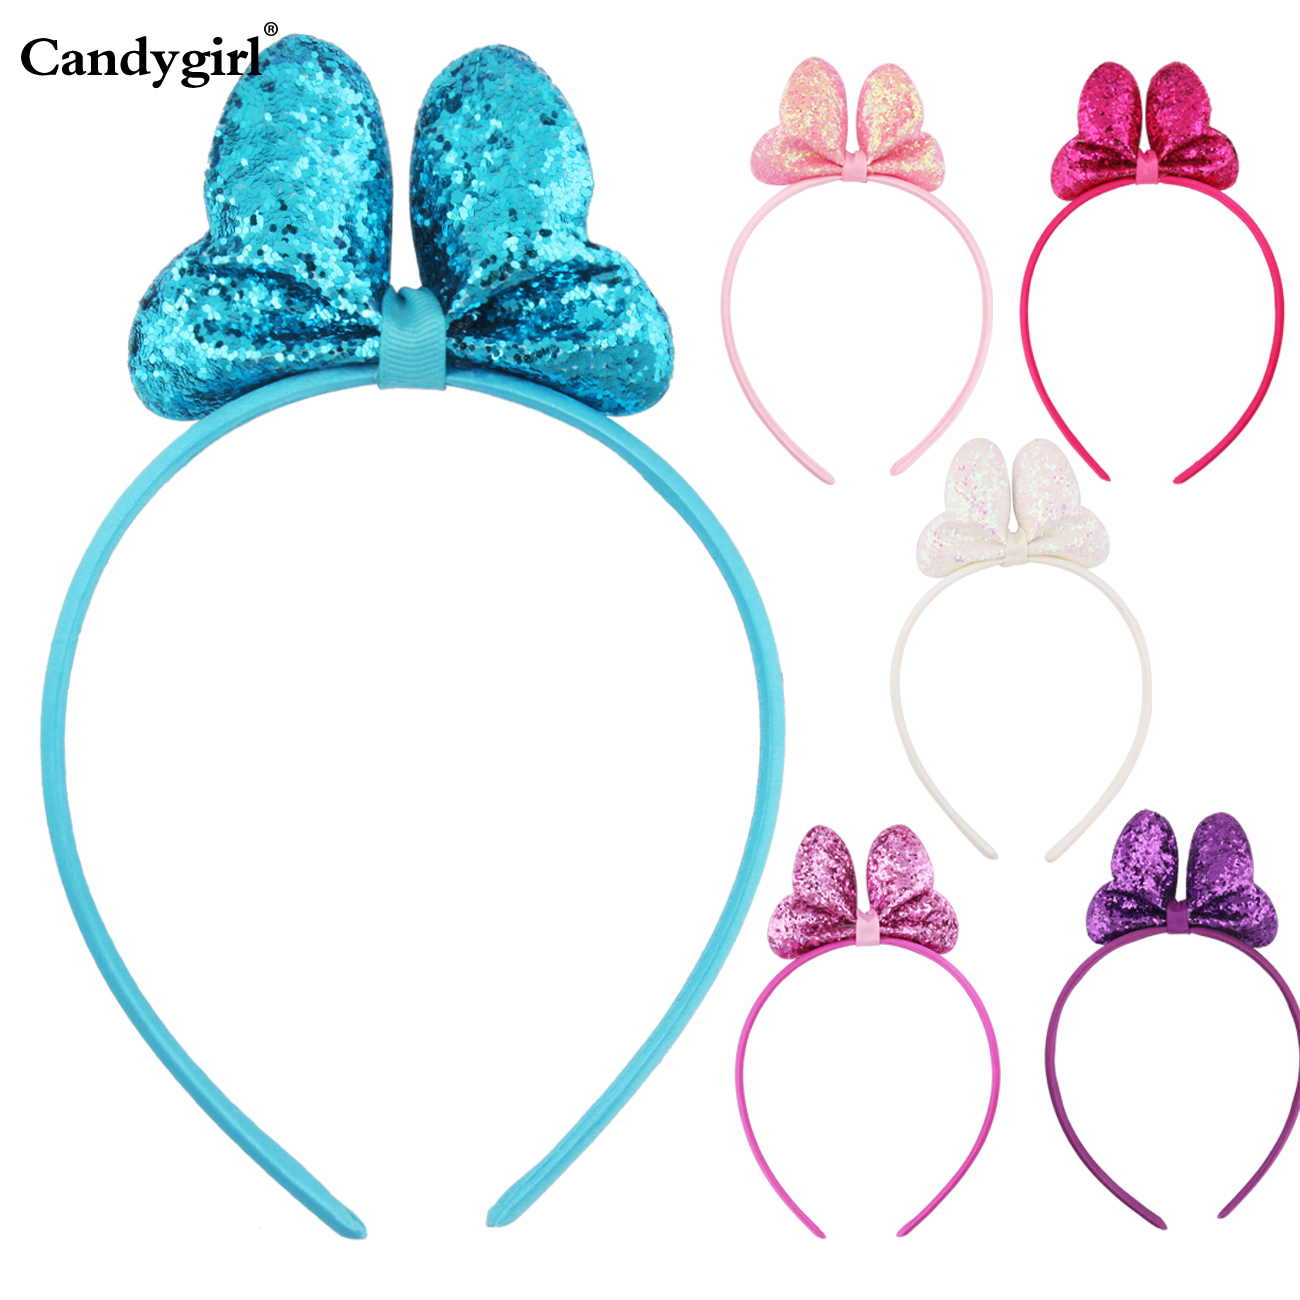 2019 New Girls Headband Bright Pink Bow Headband 6 Colors Banquet Party Decoration Children's Hair With Headwear Accessories